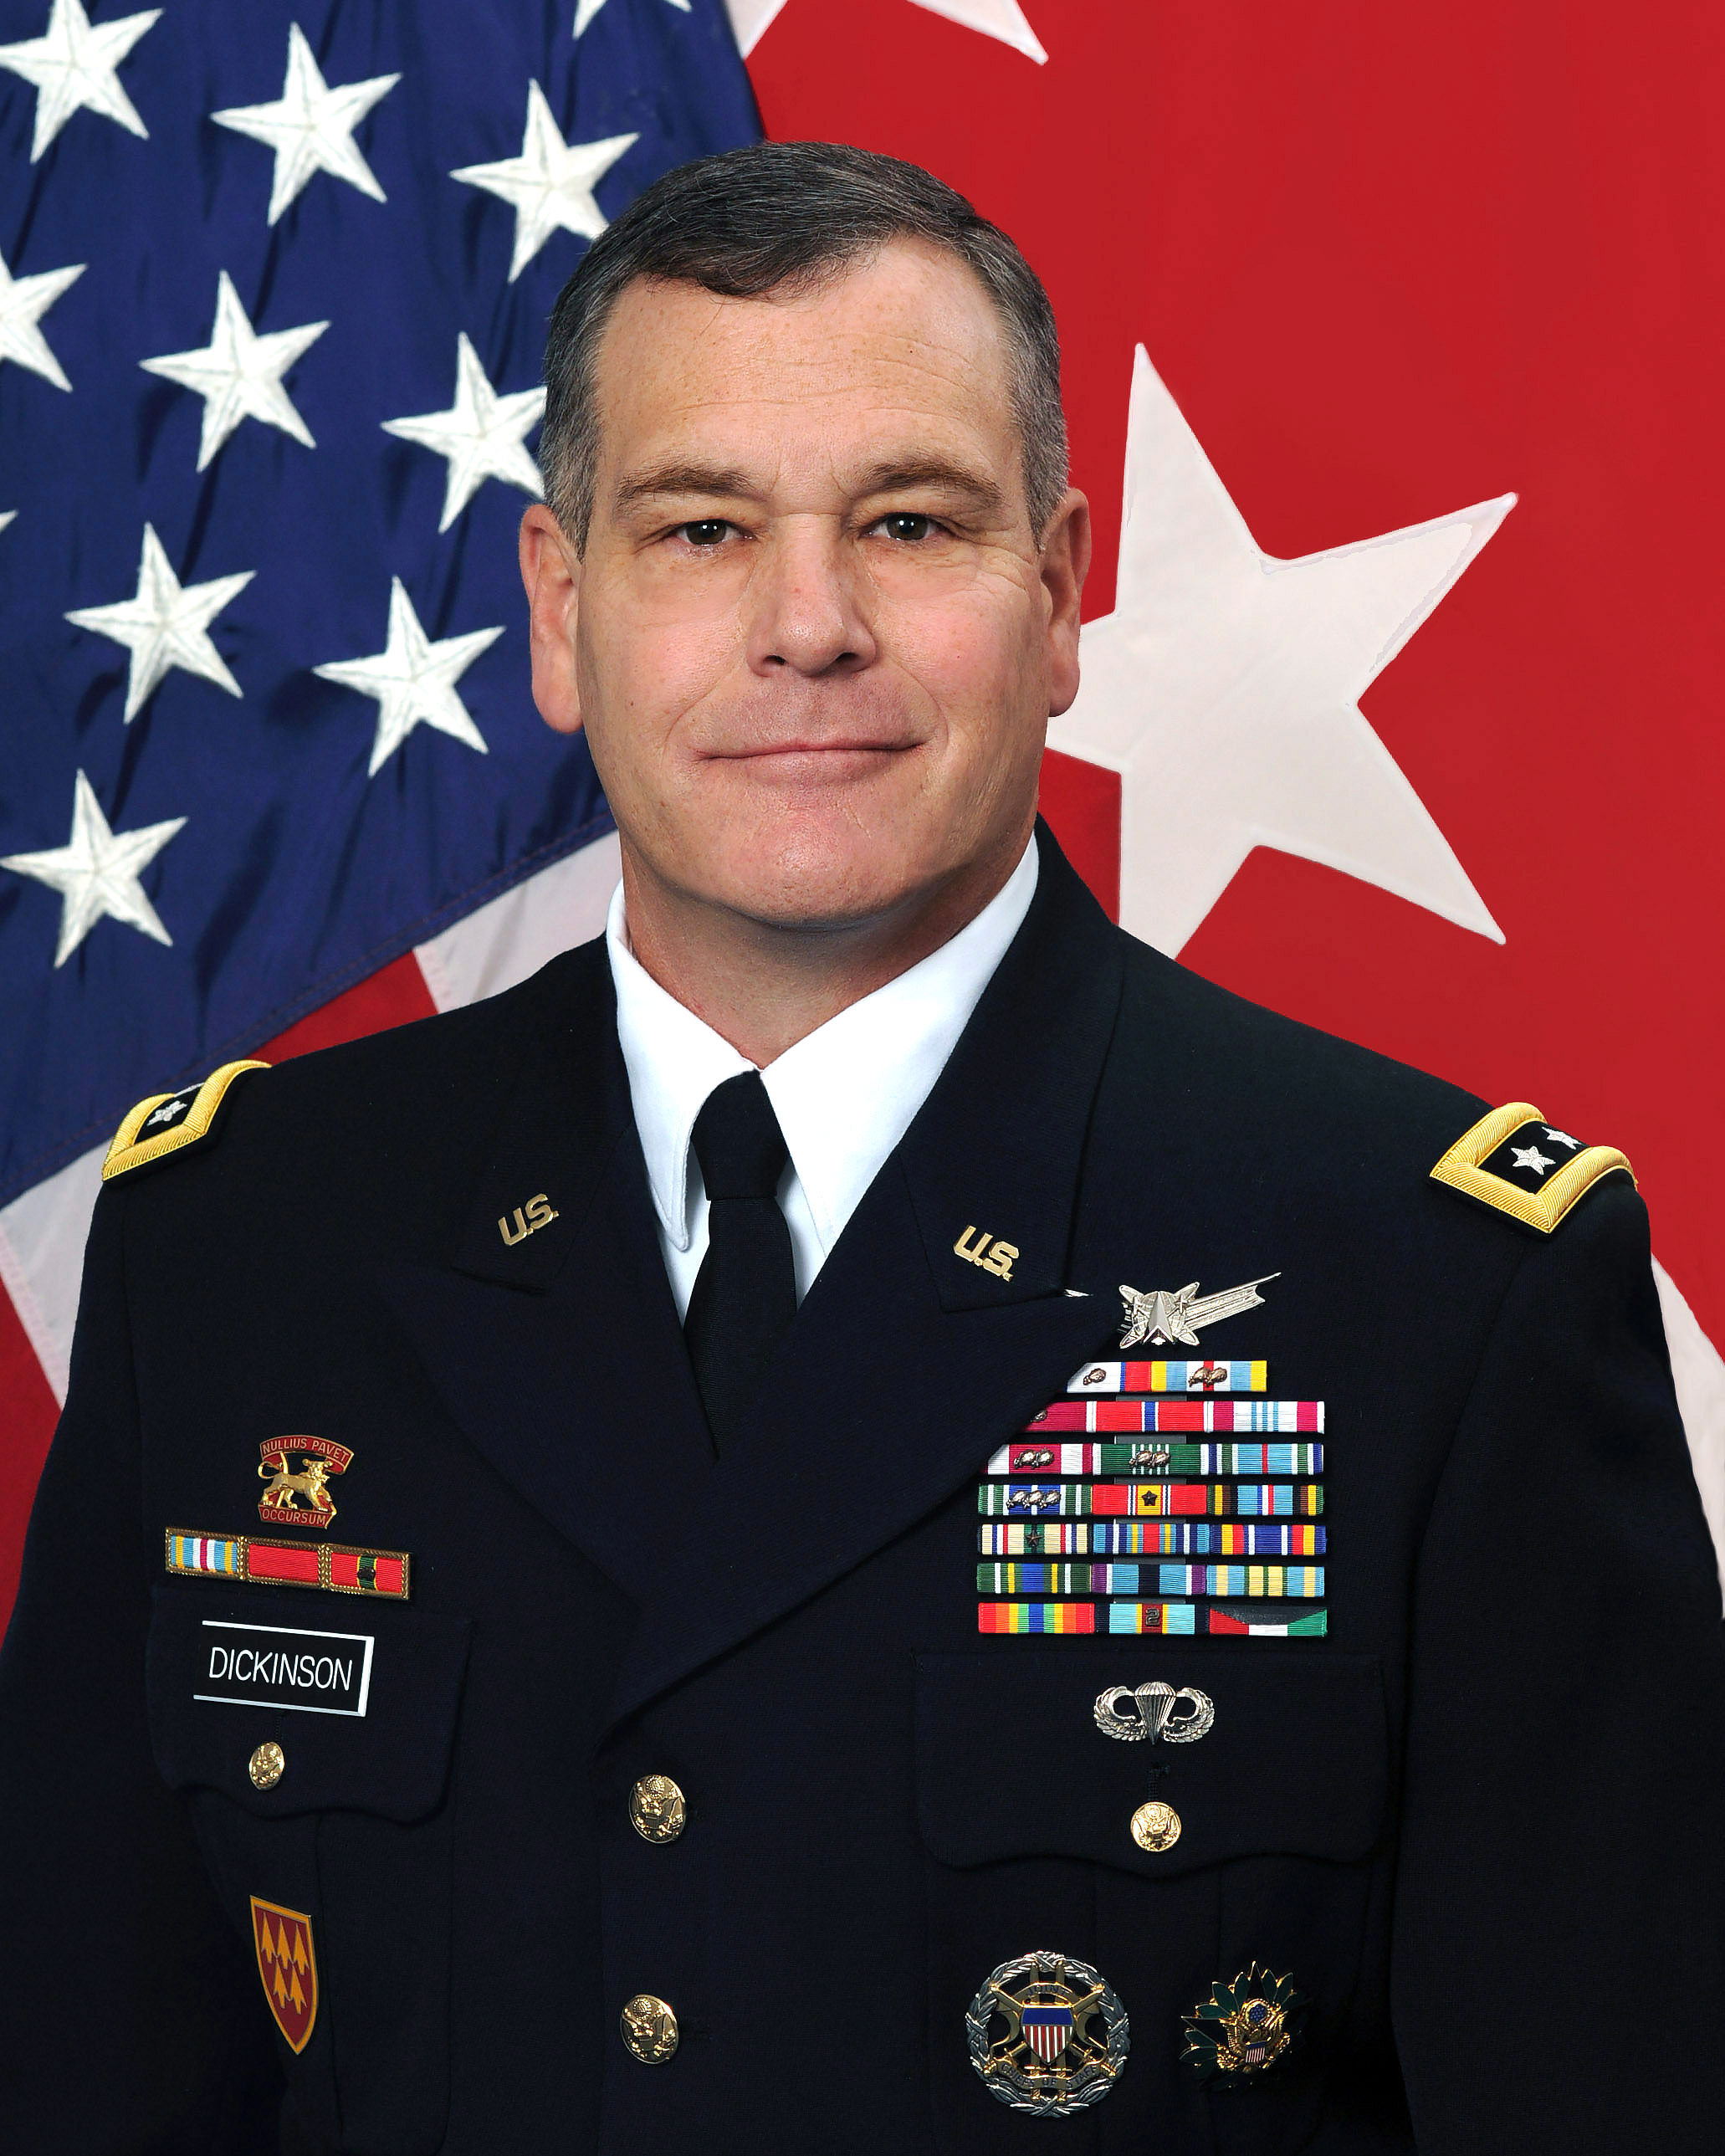 LTG James H. Dickinson, Commanding General U.S. Army Space and Missile Defense Command